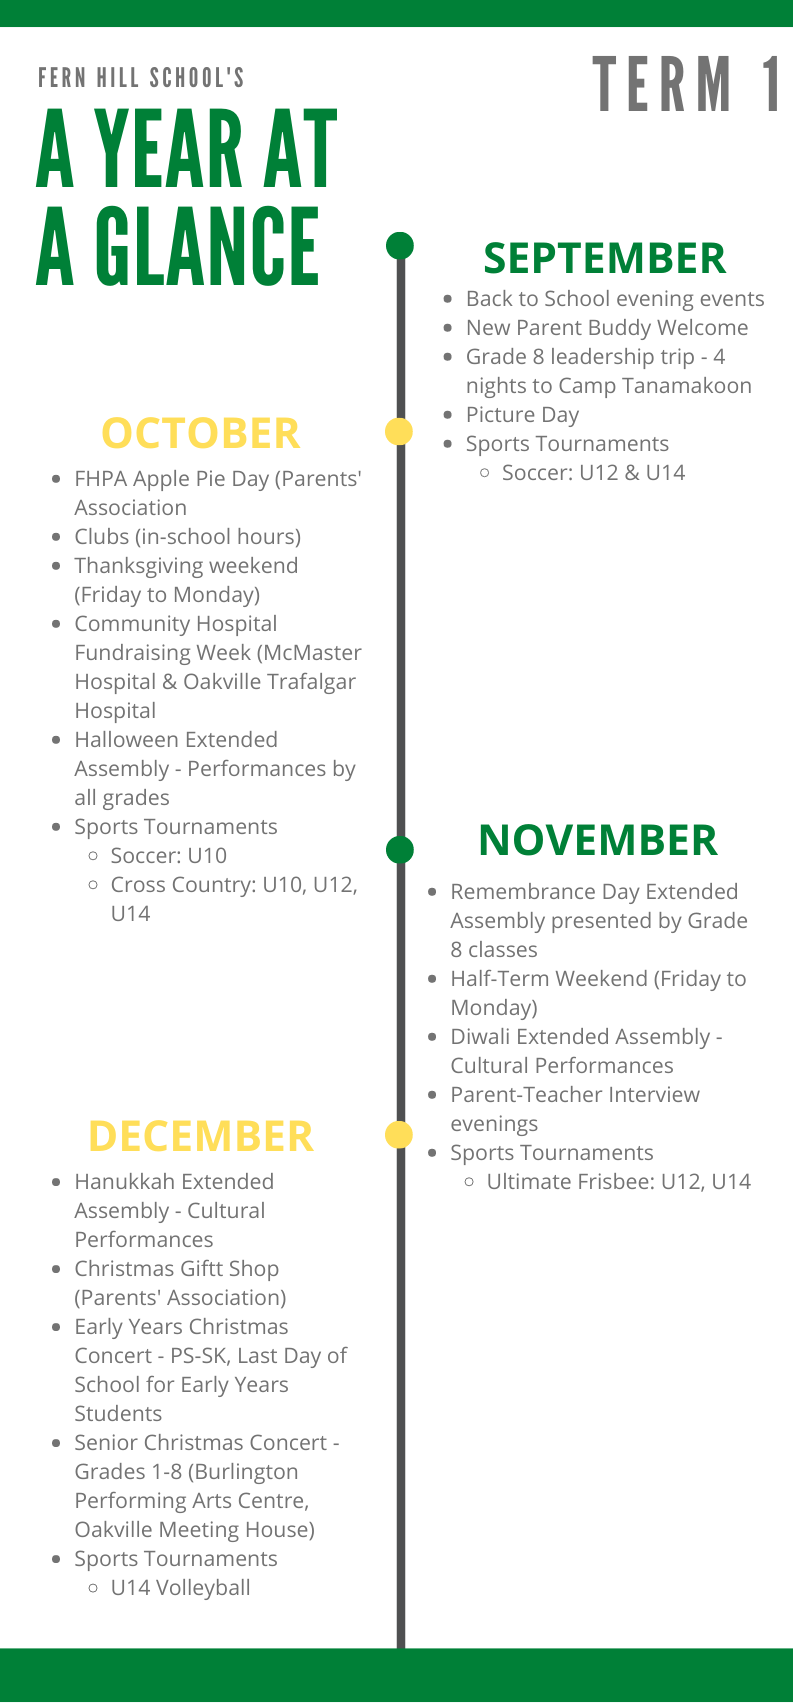 Year At A Glance - Term 1